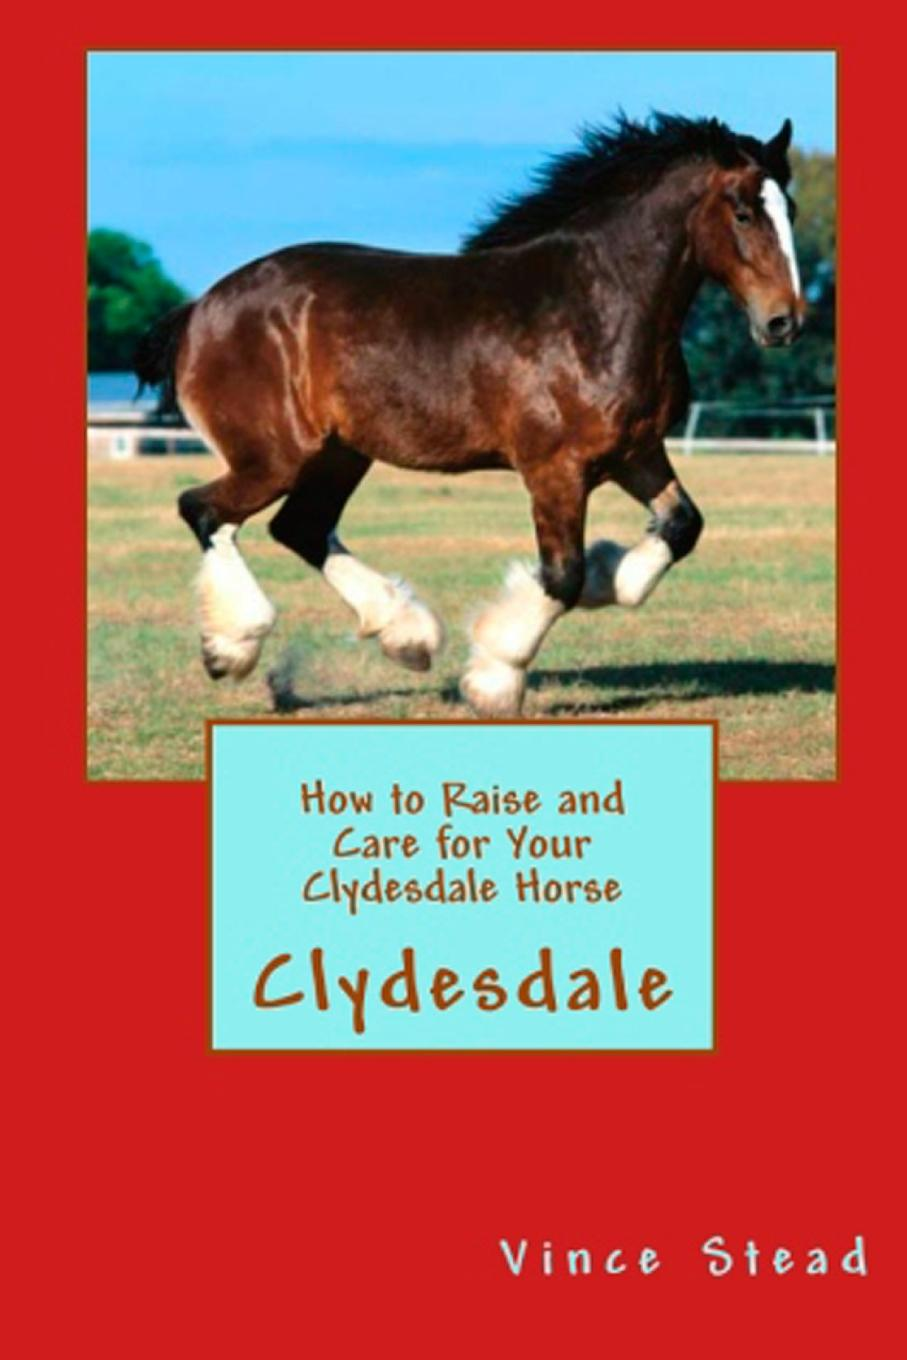 Vince Stead How to Raise and Care for Your Clydesdale Horse